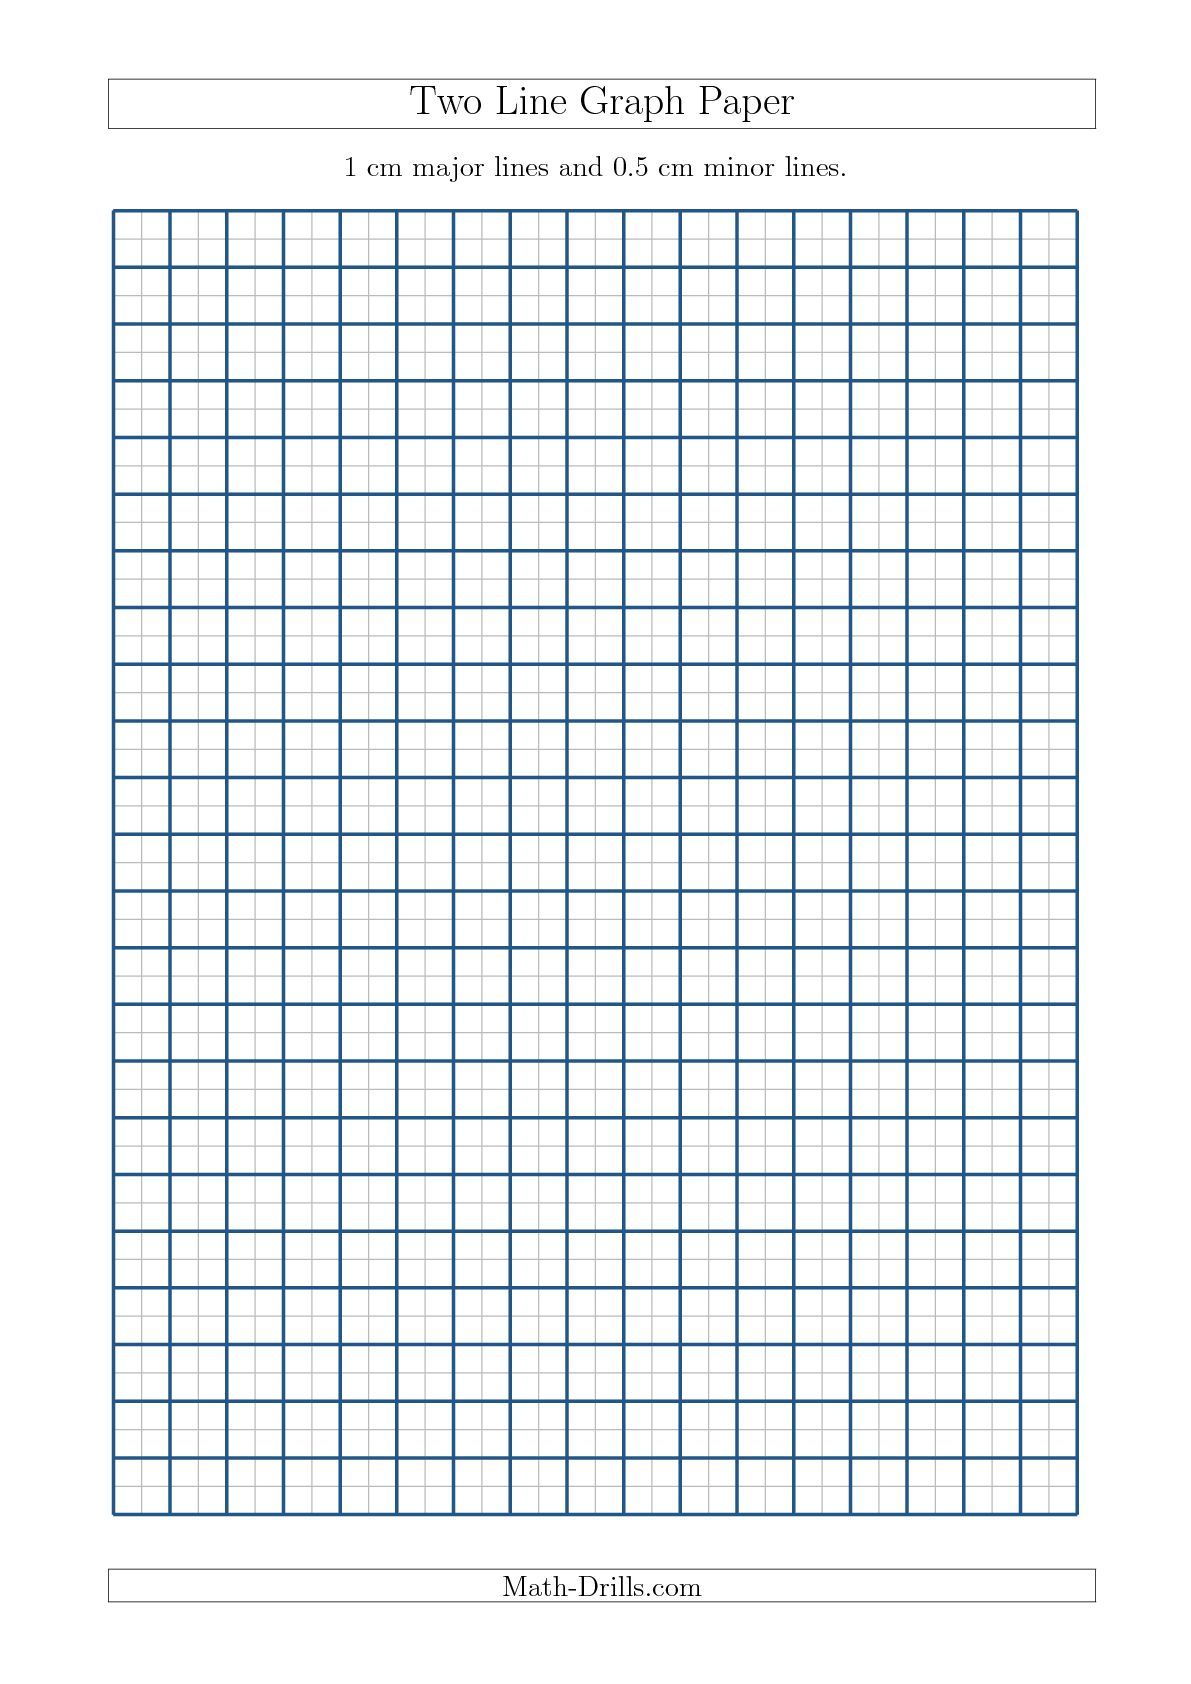 Two Line Graph Paper With 1 Cm Major Lines And 0 5 Cm